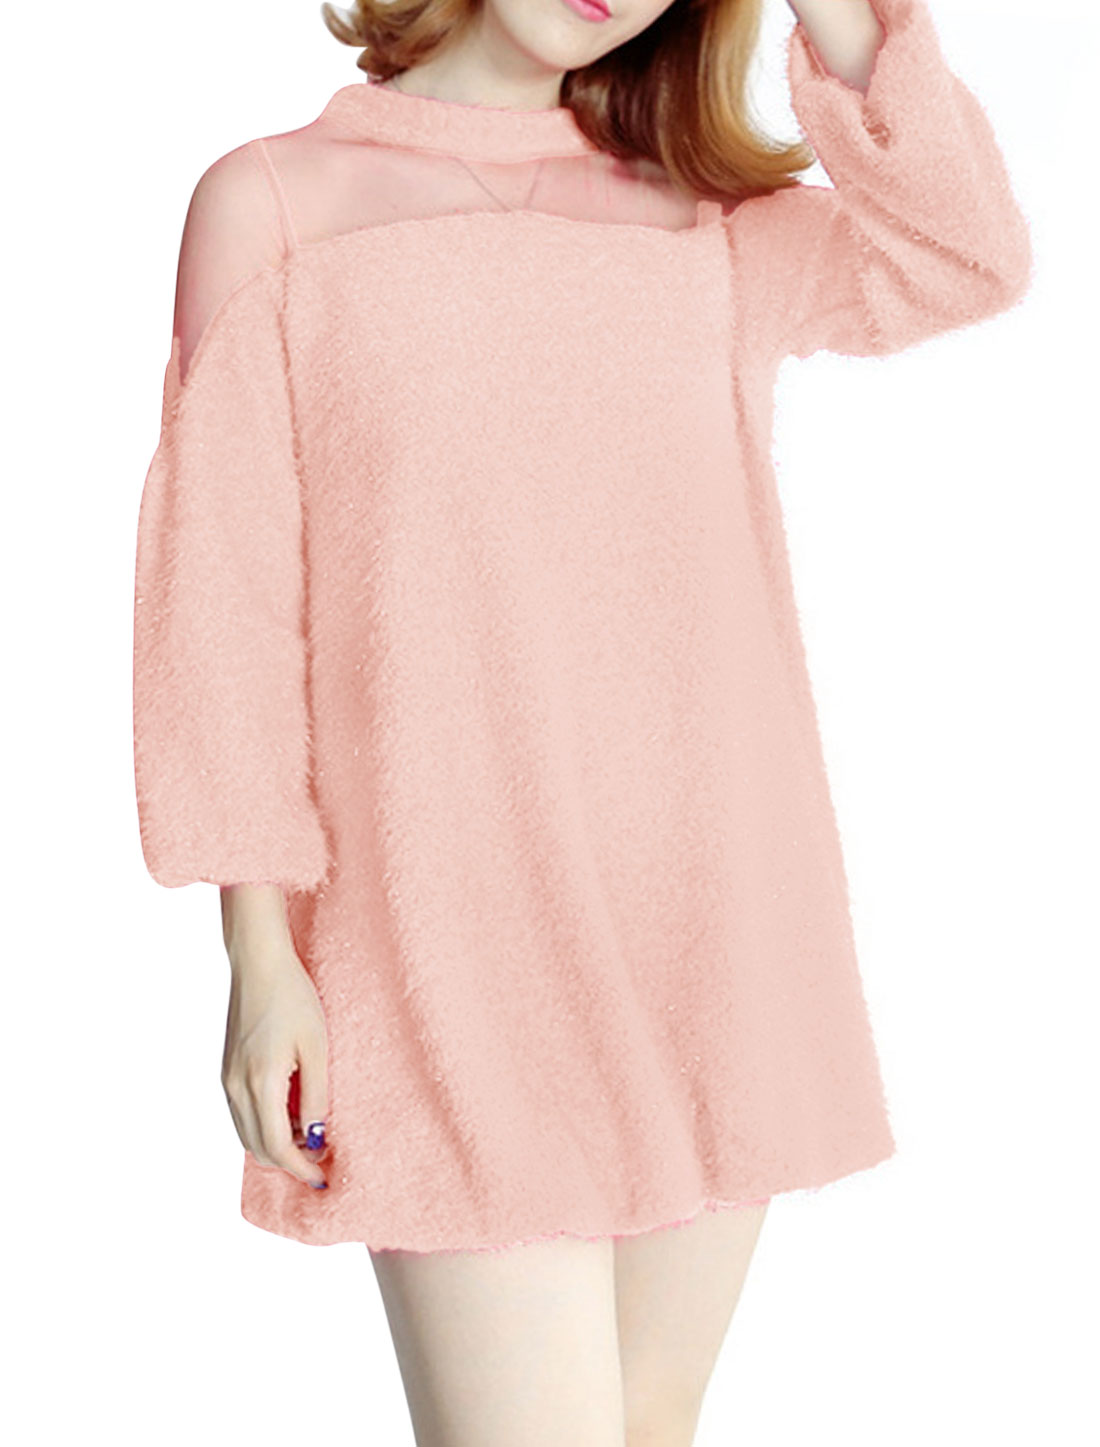 Mesh Panel Stretchy Hem Pullover Pink Tunic Top for Lady XS